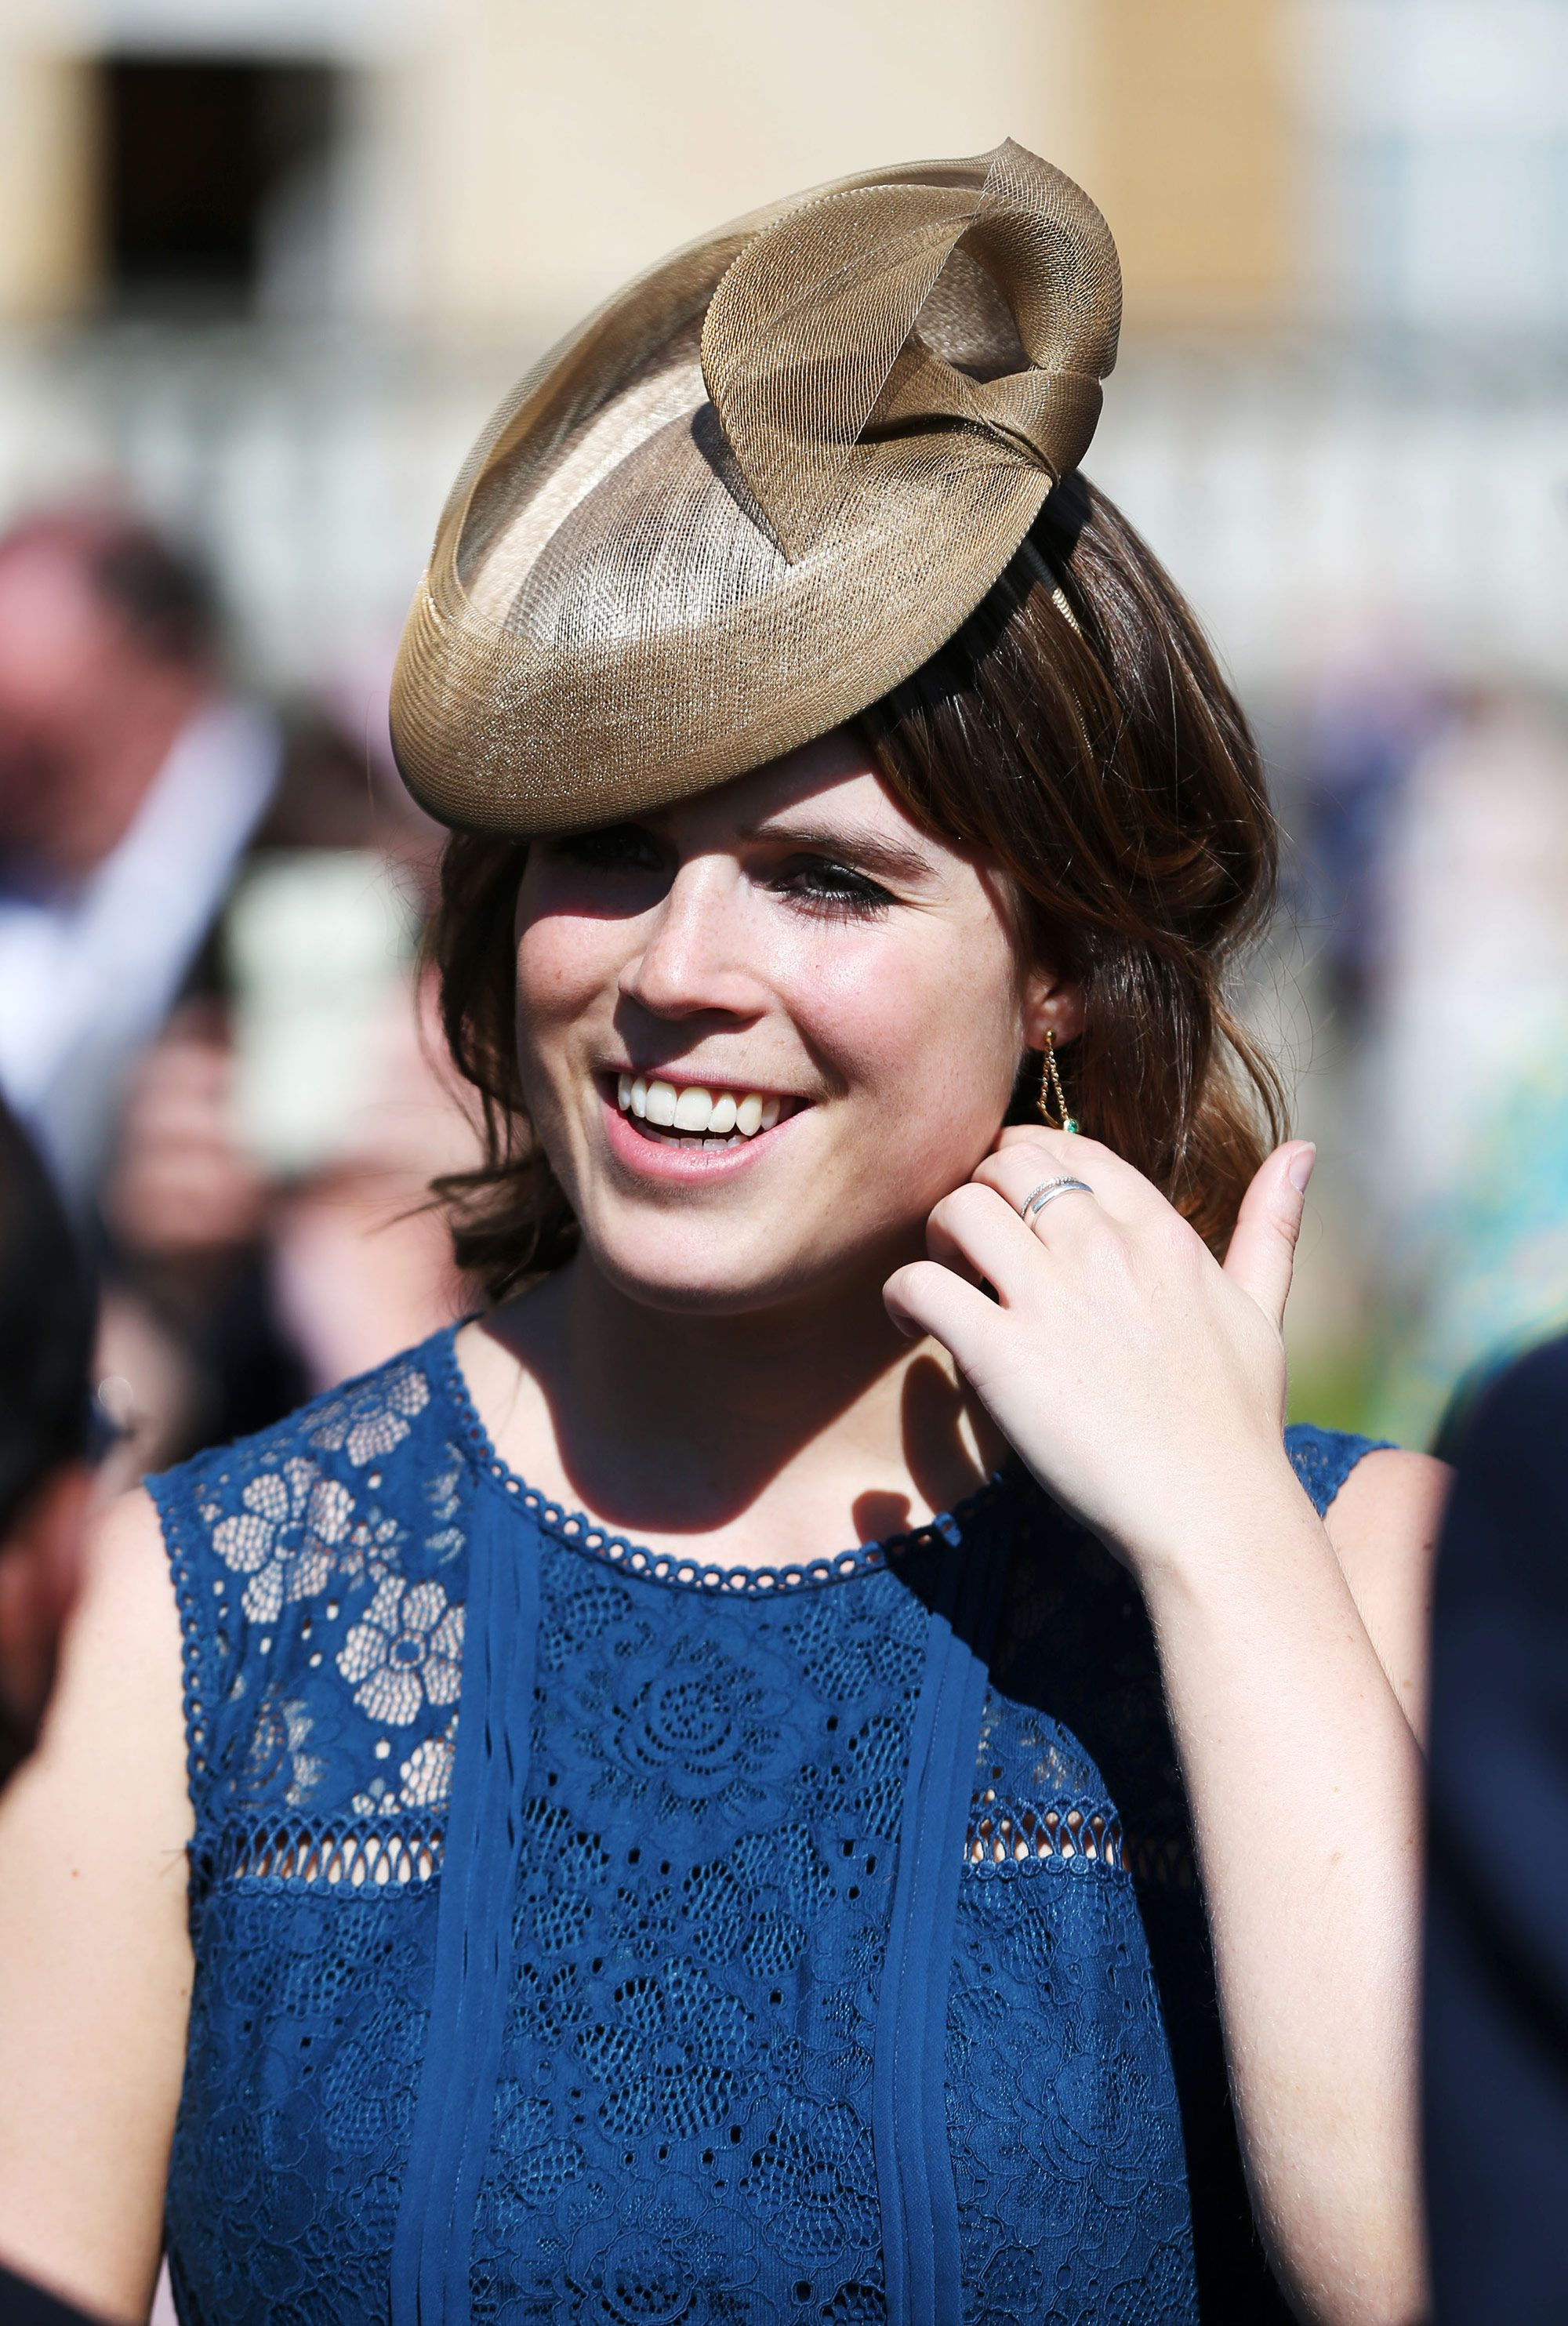 3244k Followers 19 Following 36 Posts See Instagram photos and videos from Princess Eugenie princesseugenie